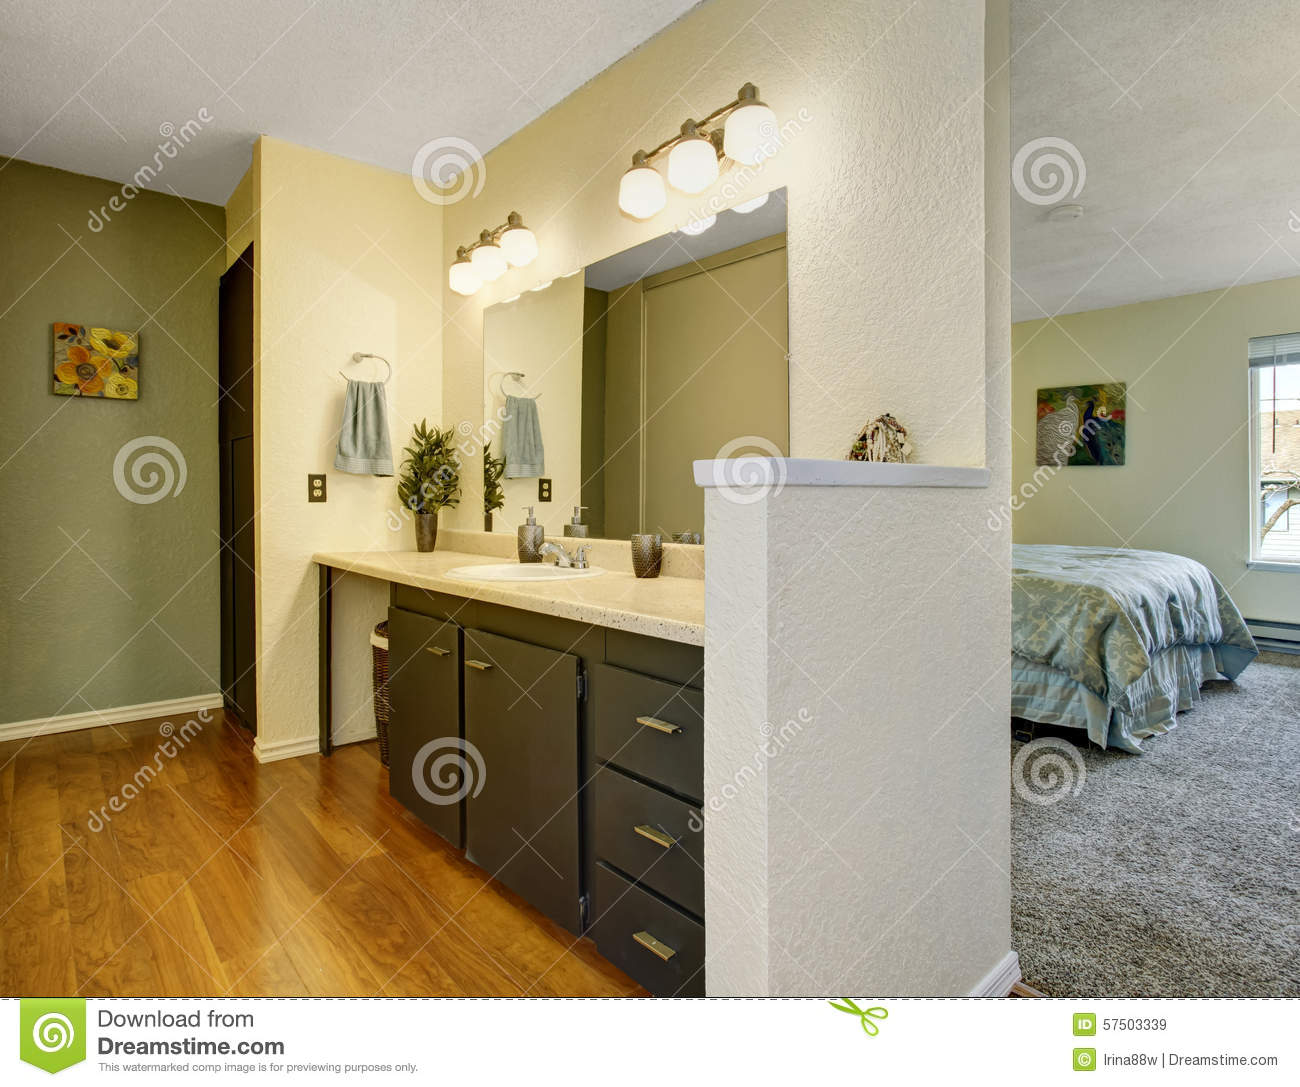 Vastu For Master Bedroom With Attached Bathroom: Lovely Bathroom Royalty-Free Stock Photography